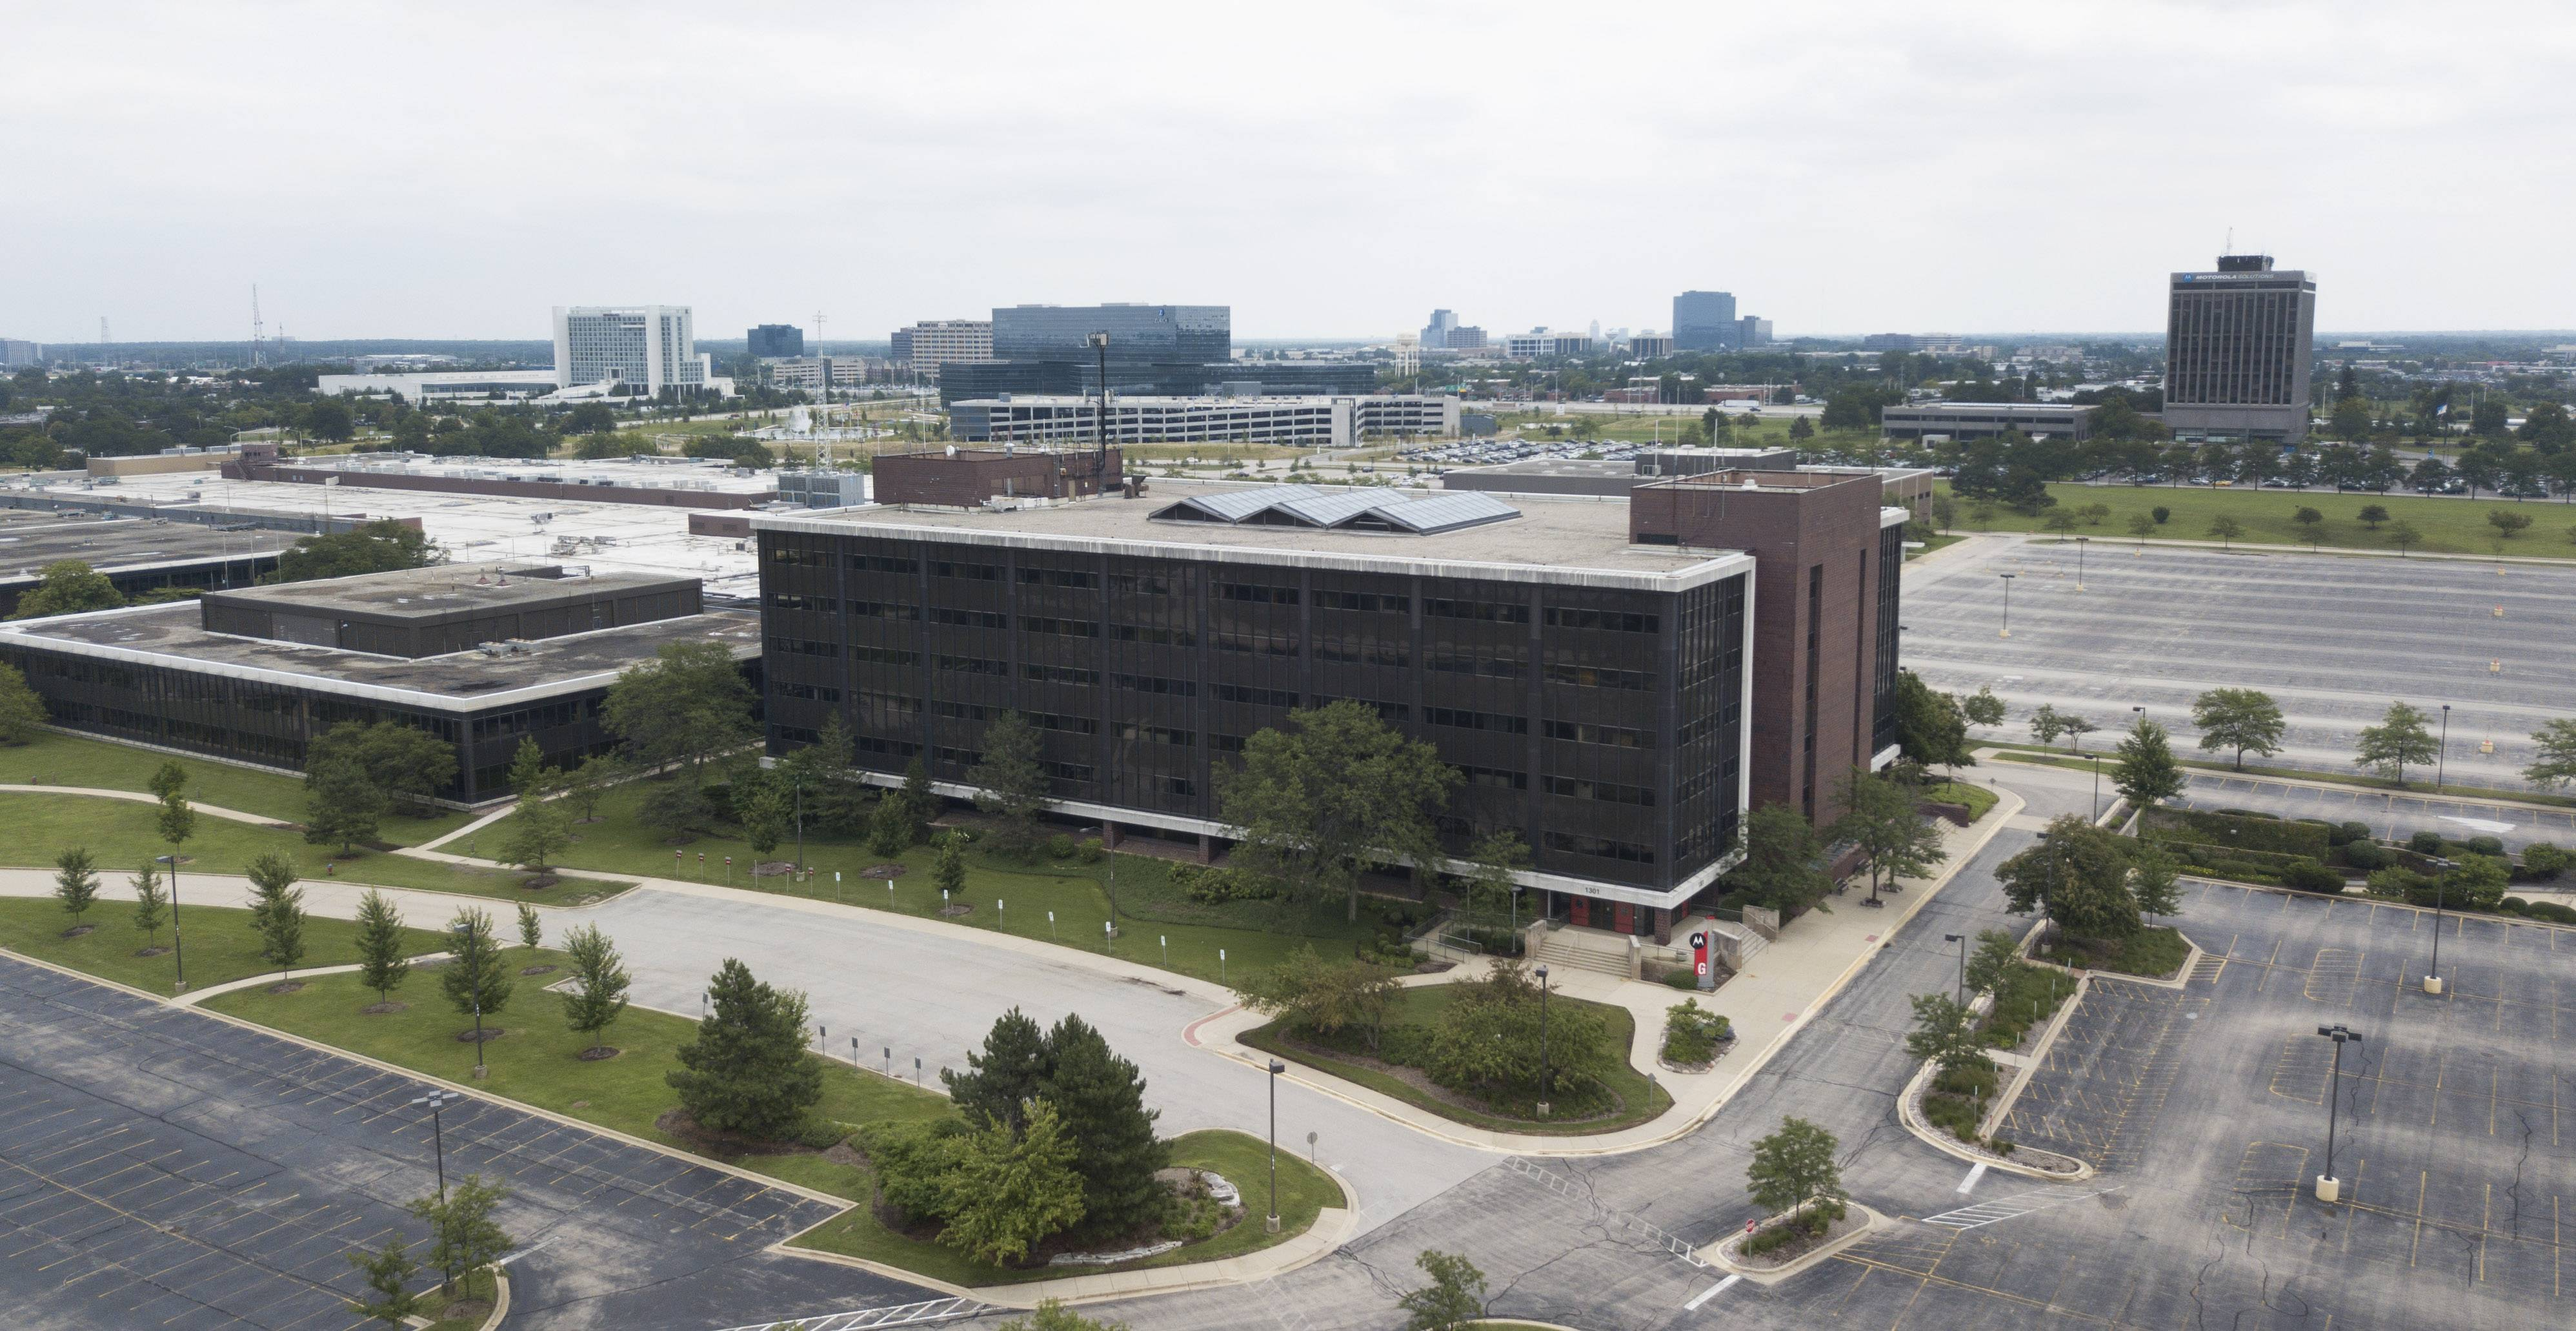 Schaumburg trustees Tuesday unanimously approved a new zoning district and design guidelines allowing redevelopment of the former Motorola Solutions campus to be far more urban and dense than is typical for even the commercial areas of a suburb.